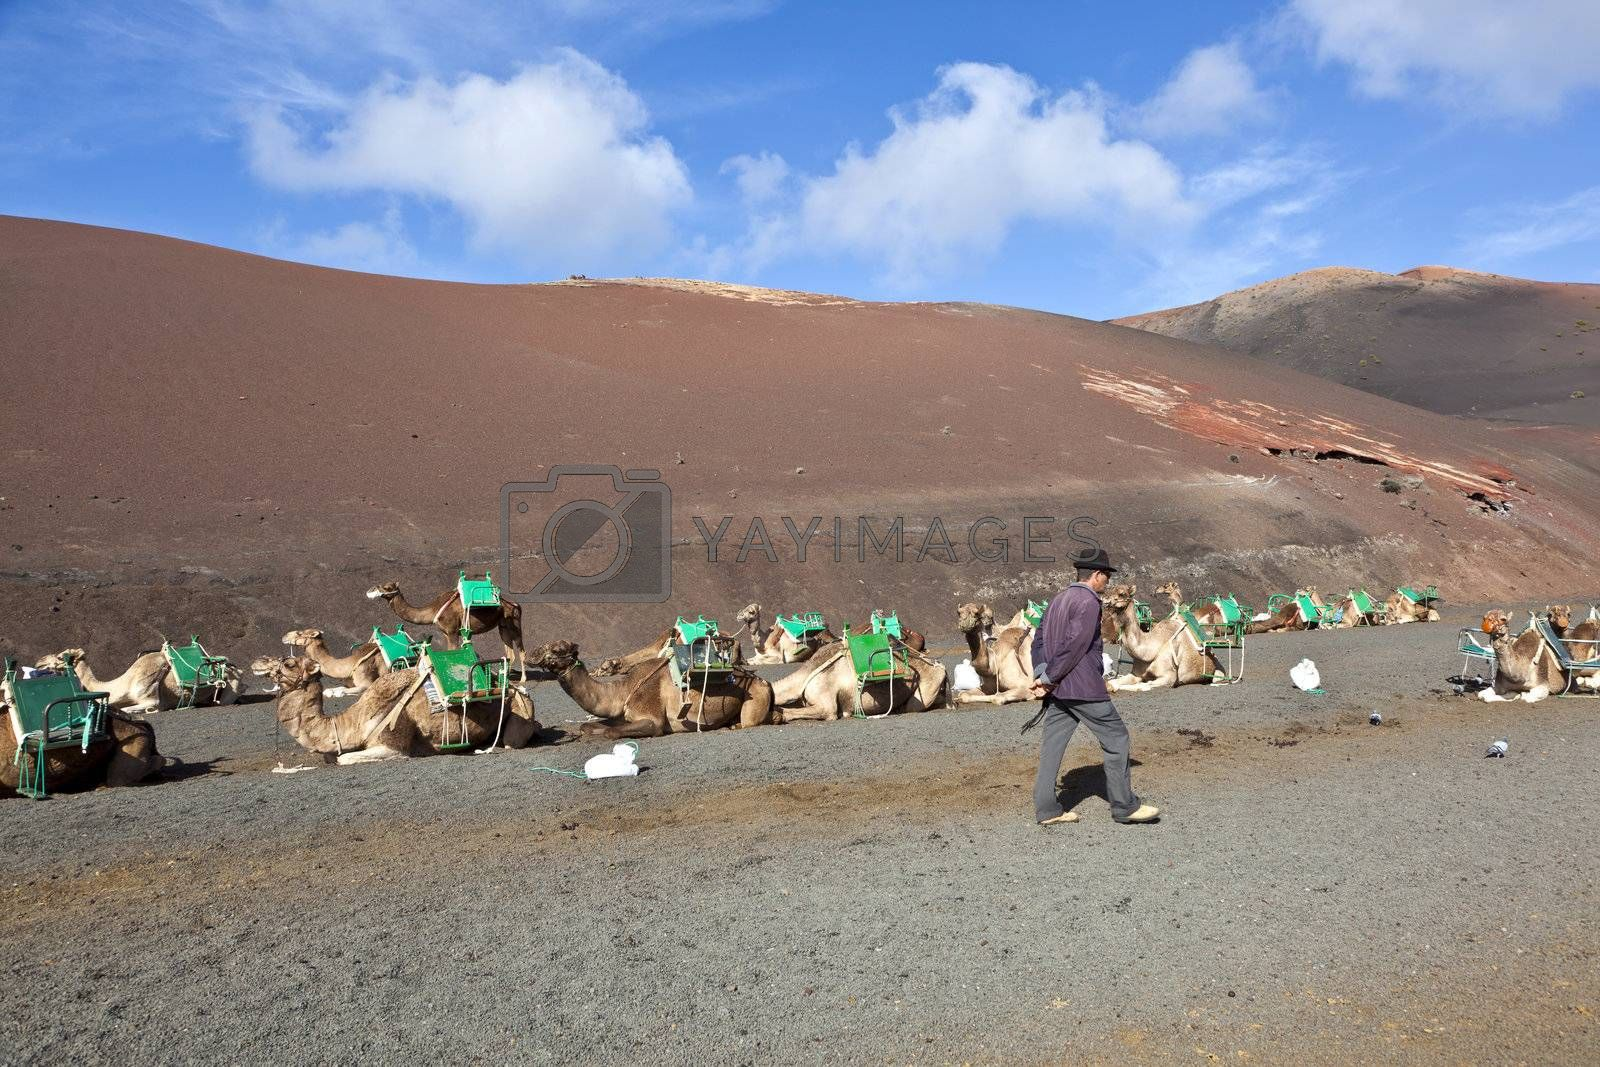 TIMANFAYA NATIONAL PARK, LANZAROTE, SPAIN - DECEMBER 26: camel rider waiting for tourists riding on camels through the famous Timanfaya National Park in December 26, 2010 in Lanzarote, Spain